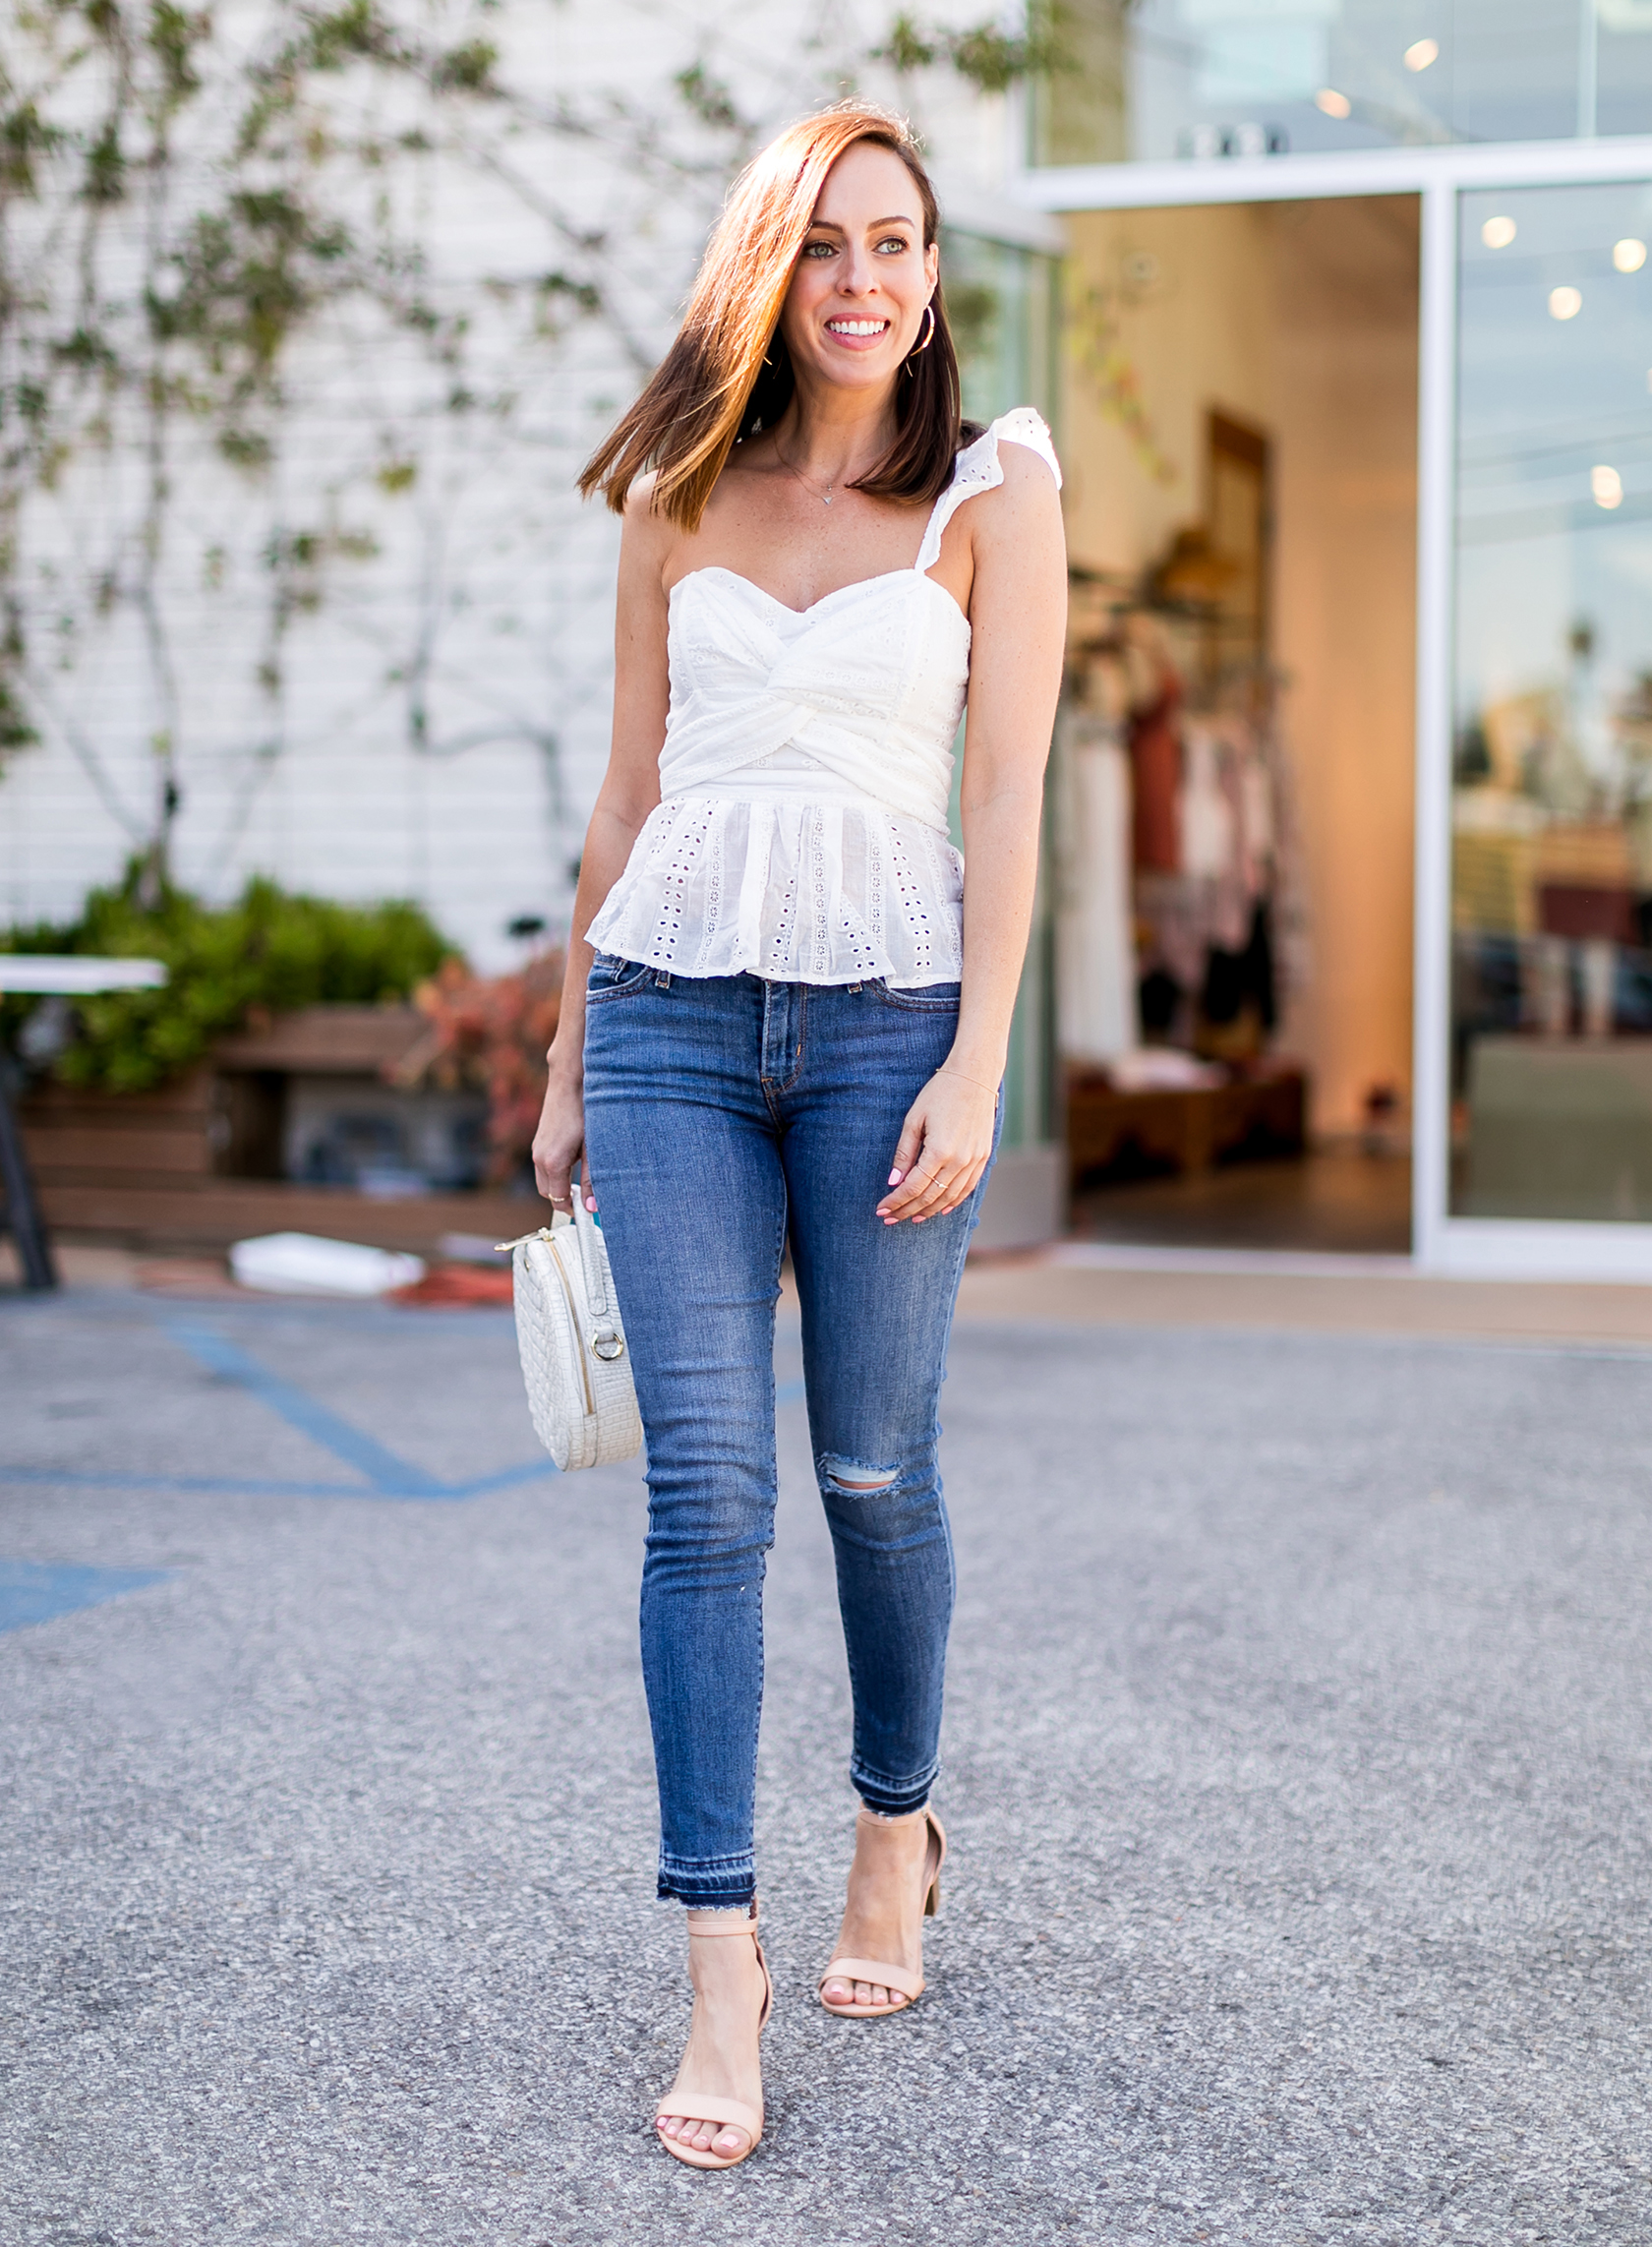 White Eyelet Tops for Summer | 2018 Fashion Trends